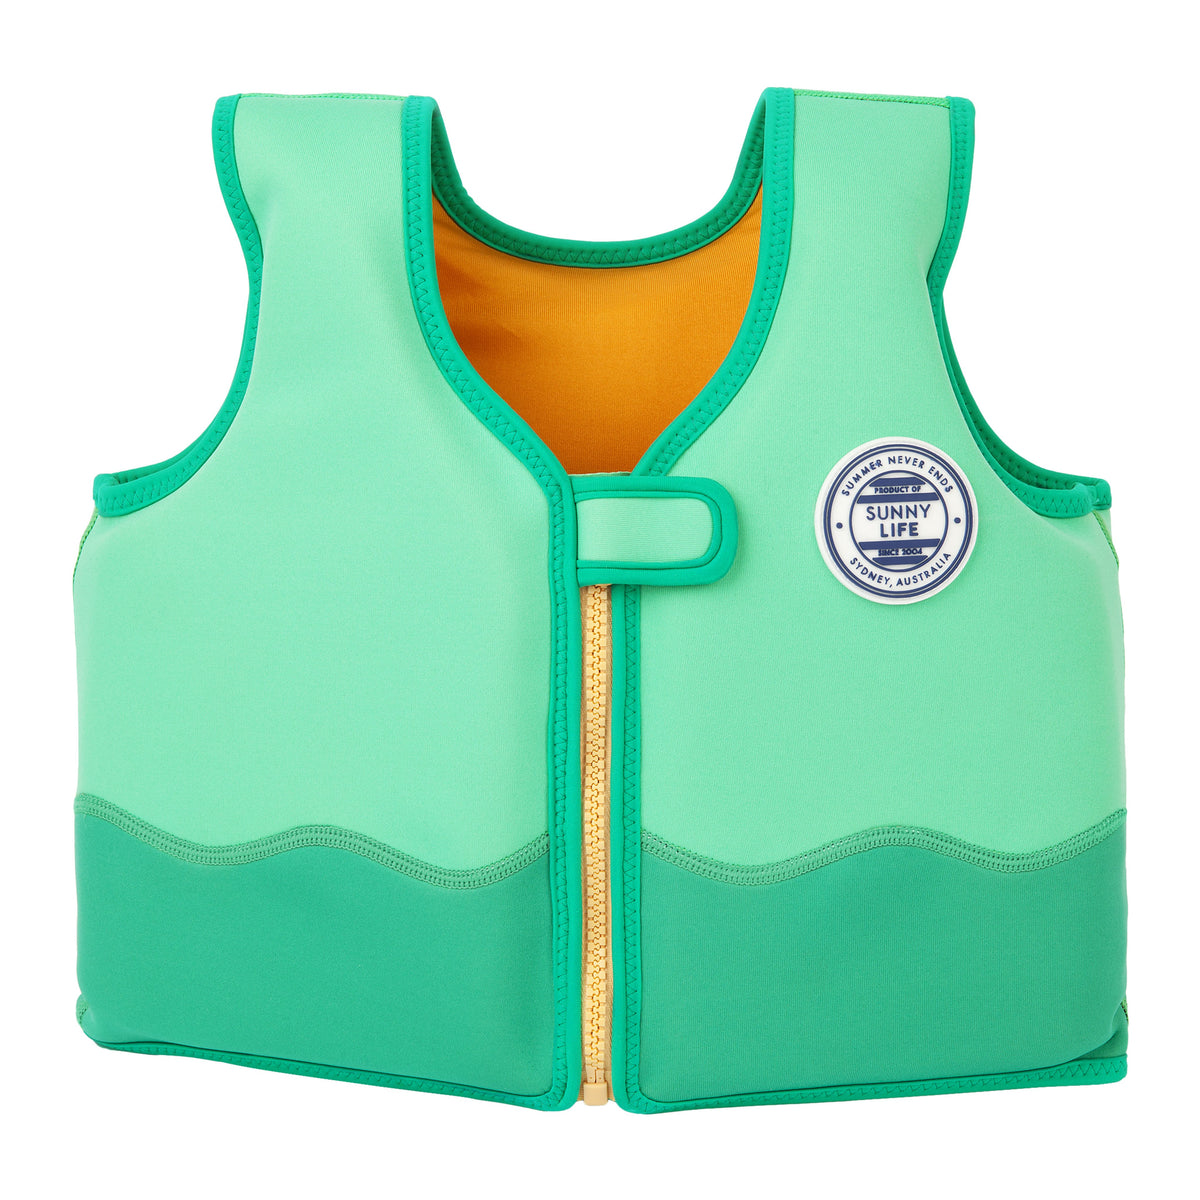 Sunnylife | Float Vest 2-4 | Croc